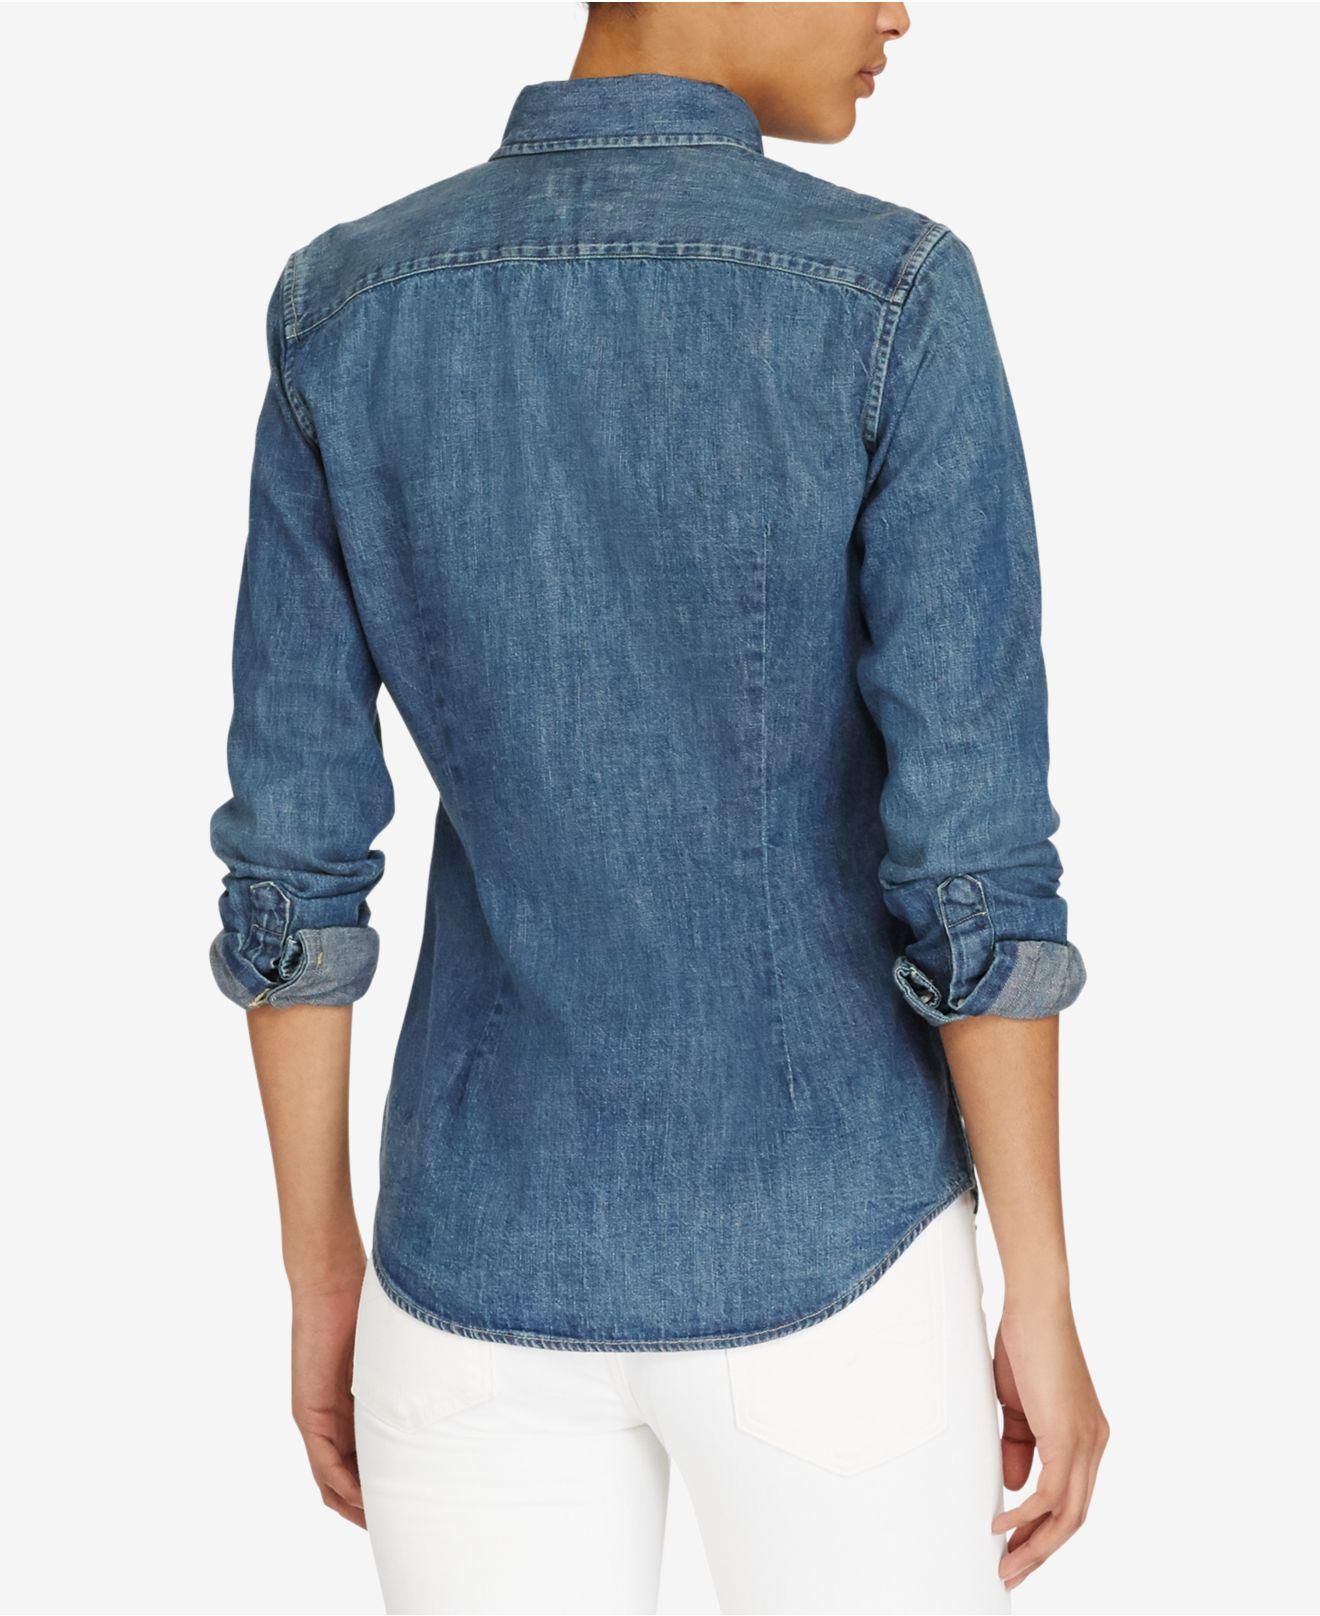 e44dae82fe Lyst - Polo Ralph Lauren Custom Fit Denim Shirt in Blue - Save 2%